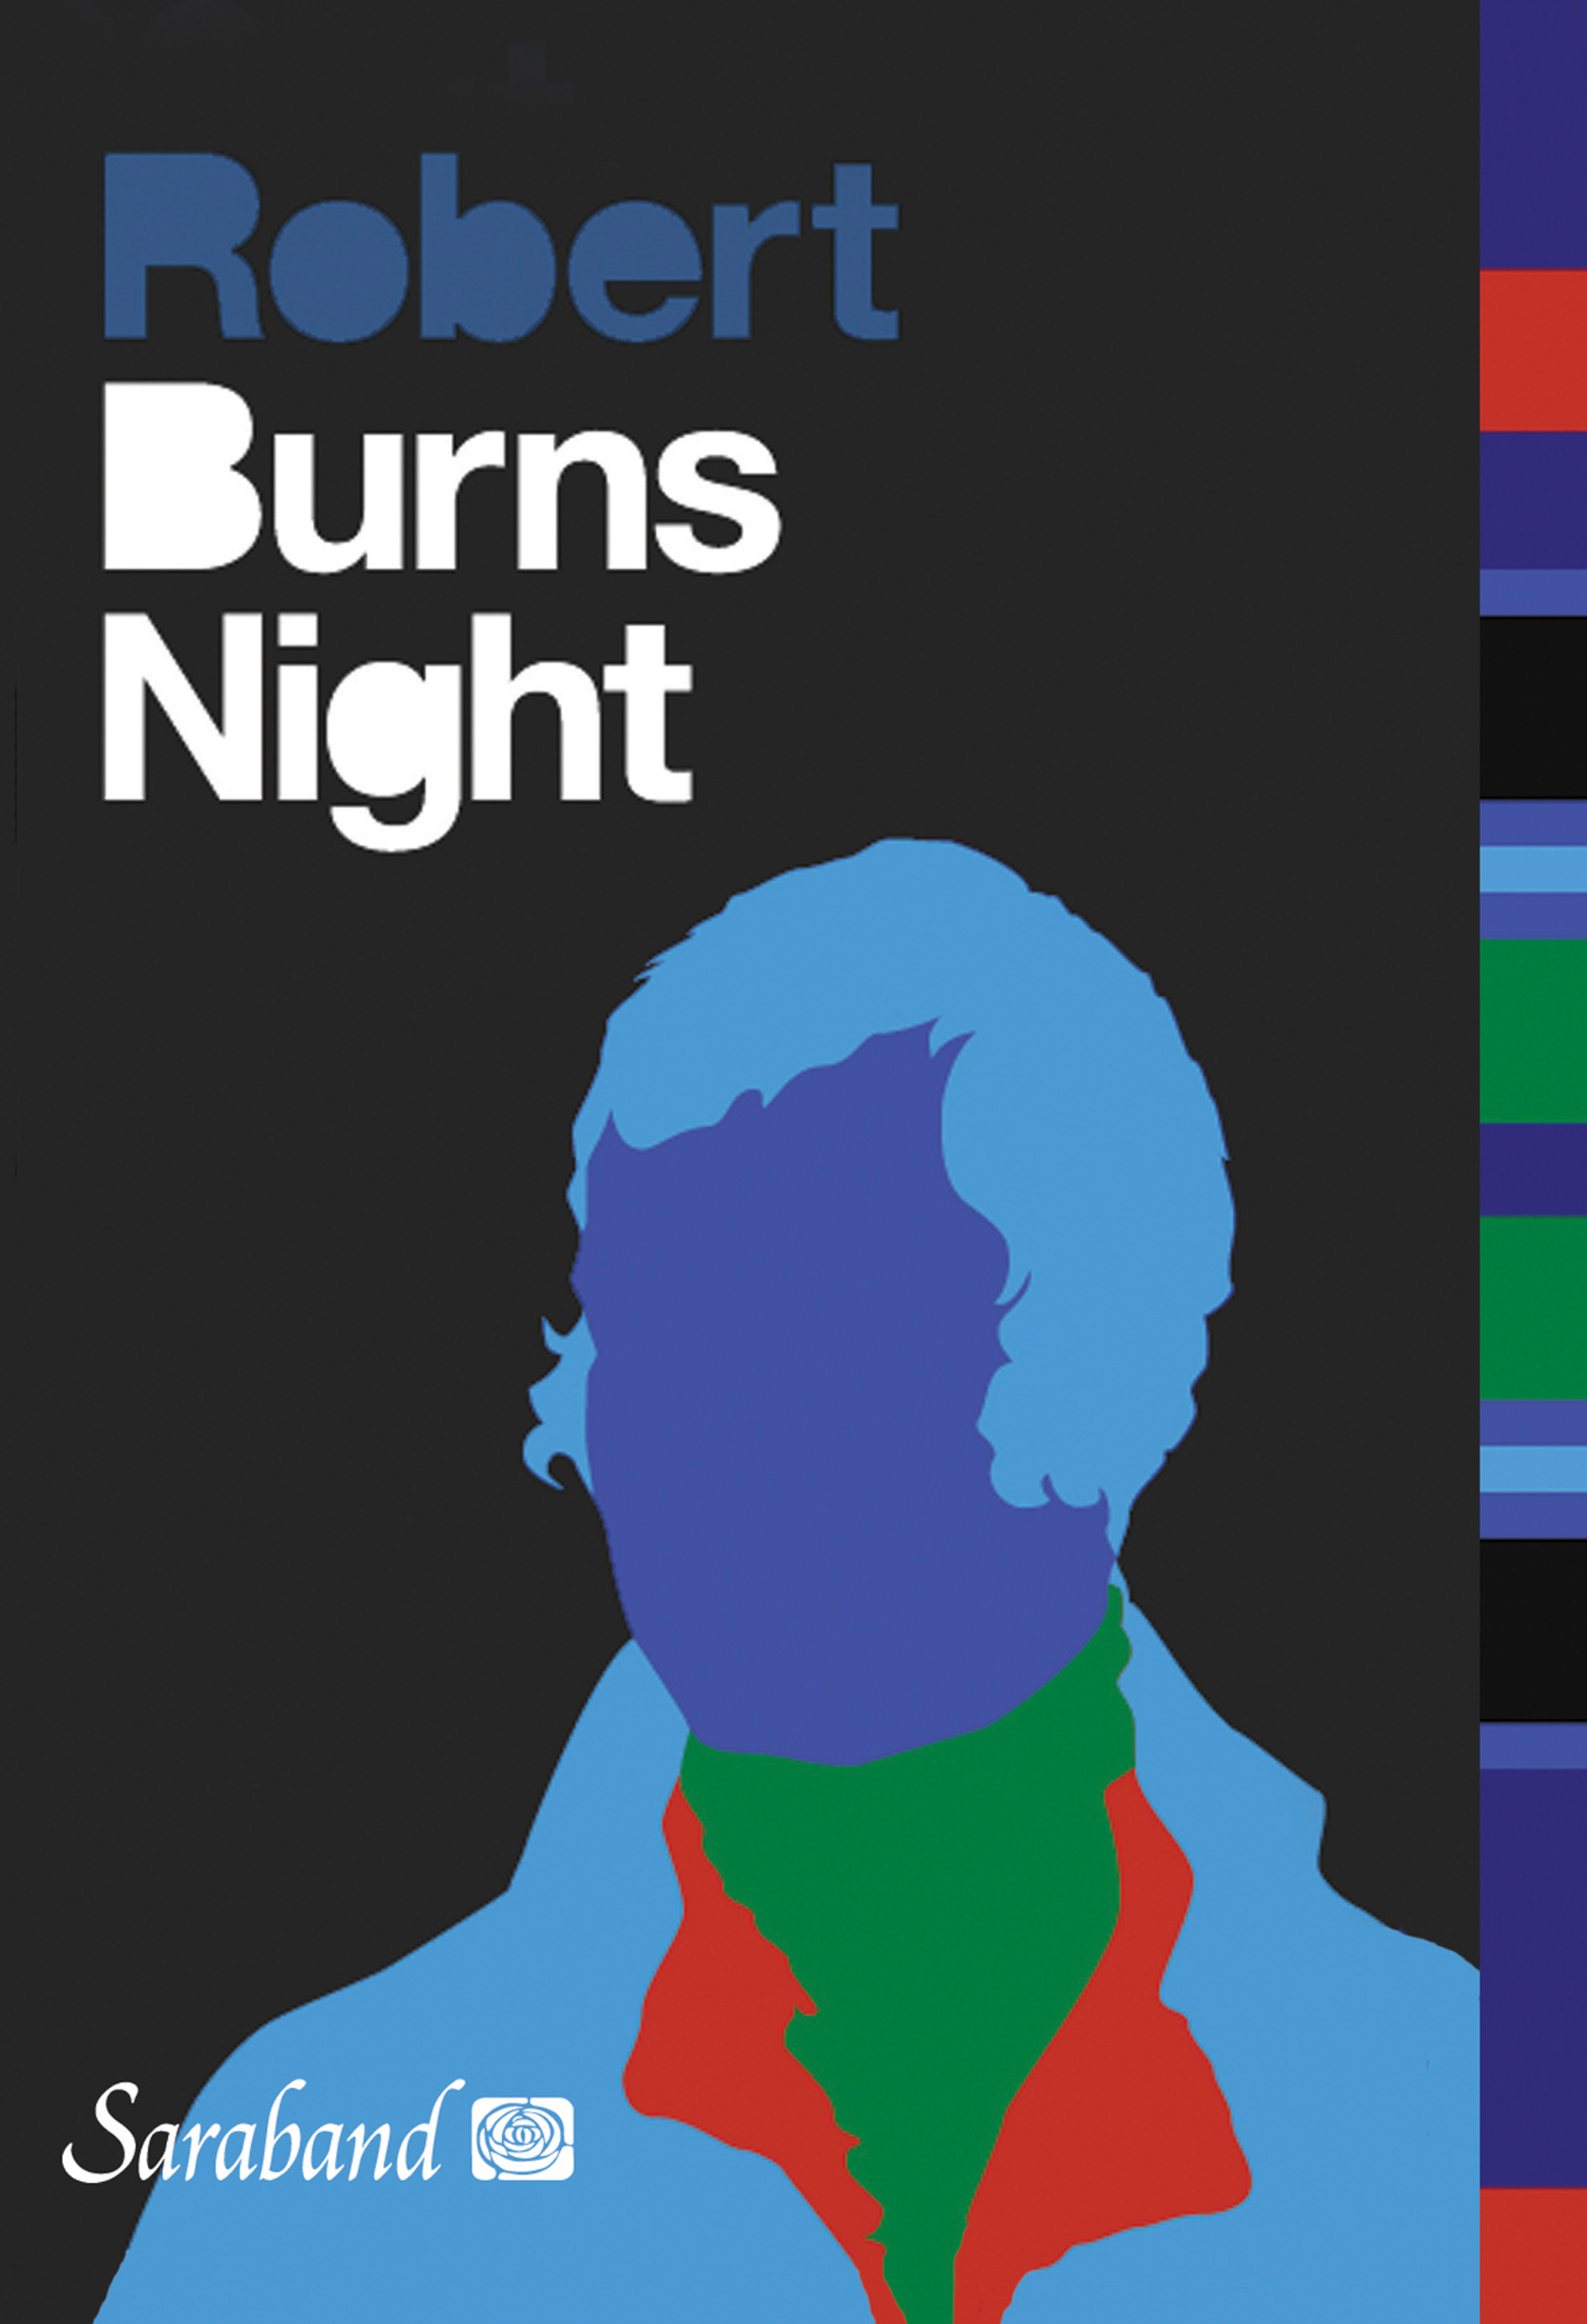 The Making of the Robert Burns Night App